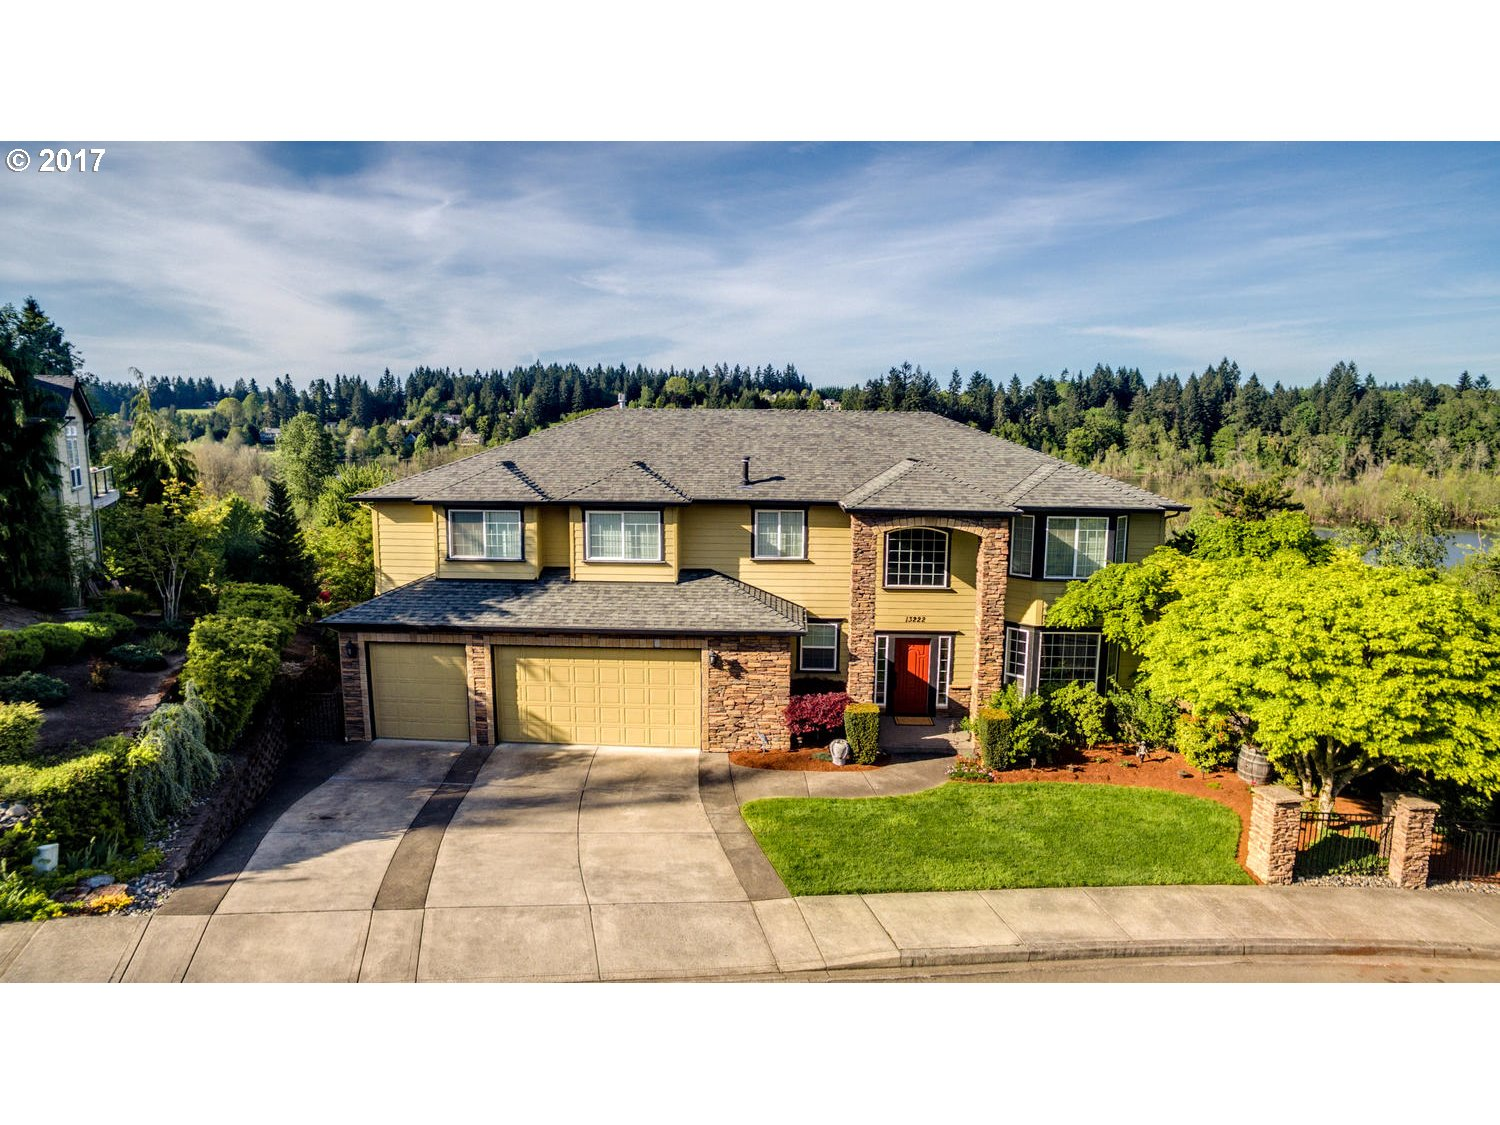 13222 NW 33RD AVE, Vancouver, WA 98685